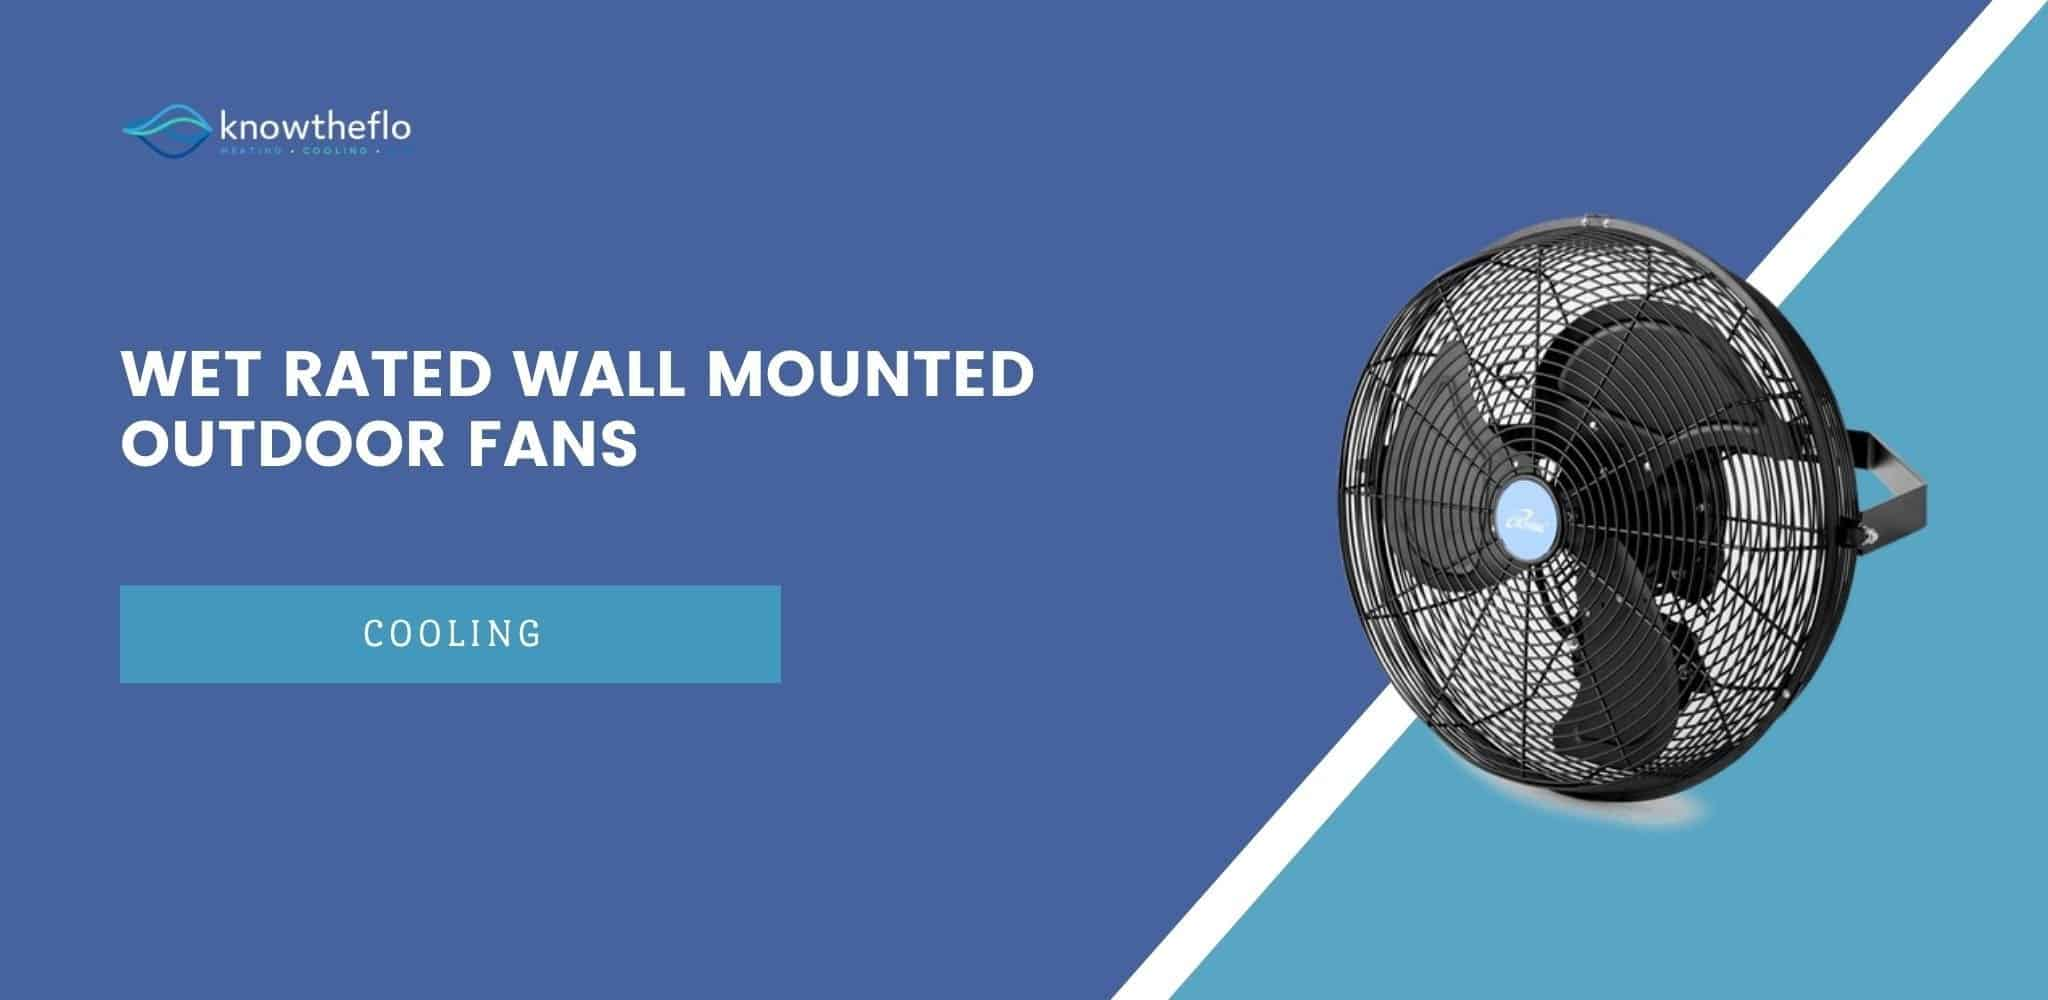 Wet Rated Wall Mounted Outdoor Fans